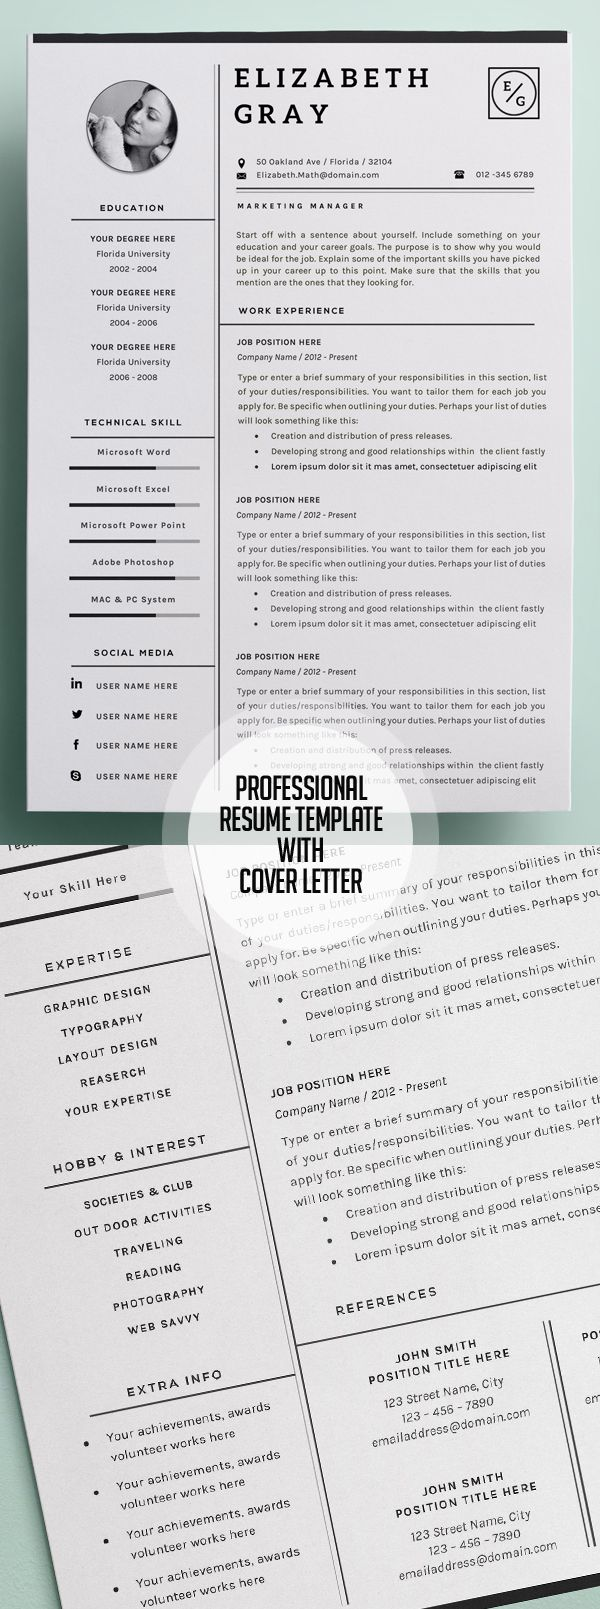 Opposenewapstandardsus  Picturesque  Resume Ideas On Pinterest  Resume Resume Templates And  With Great Professional And Modern Resume Template With Page Cover Cvtemplate With Captivating Sample Investment Banking Resume Also Video Resume Script In Addition College Resume Template Microsoft Word And District Manager Resume Sample As Well As Best Resume Advice Additionally What Should A Professional Resume Look Like From Pinterestcom With Opposenewapstandardsus  Great  Resume Ideas On Pinterest  Resume Resume Templates And  With Captivating Professional And Modern Resume Template With Page Cover Cvtemplate And Picturesque Sample Investment Banking Resume Also Video Resume Script In Addition College Resume Template Microsoft Word From Pinterestcom